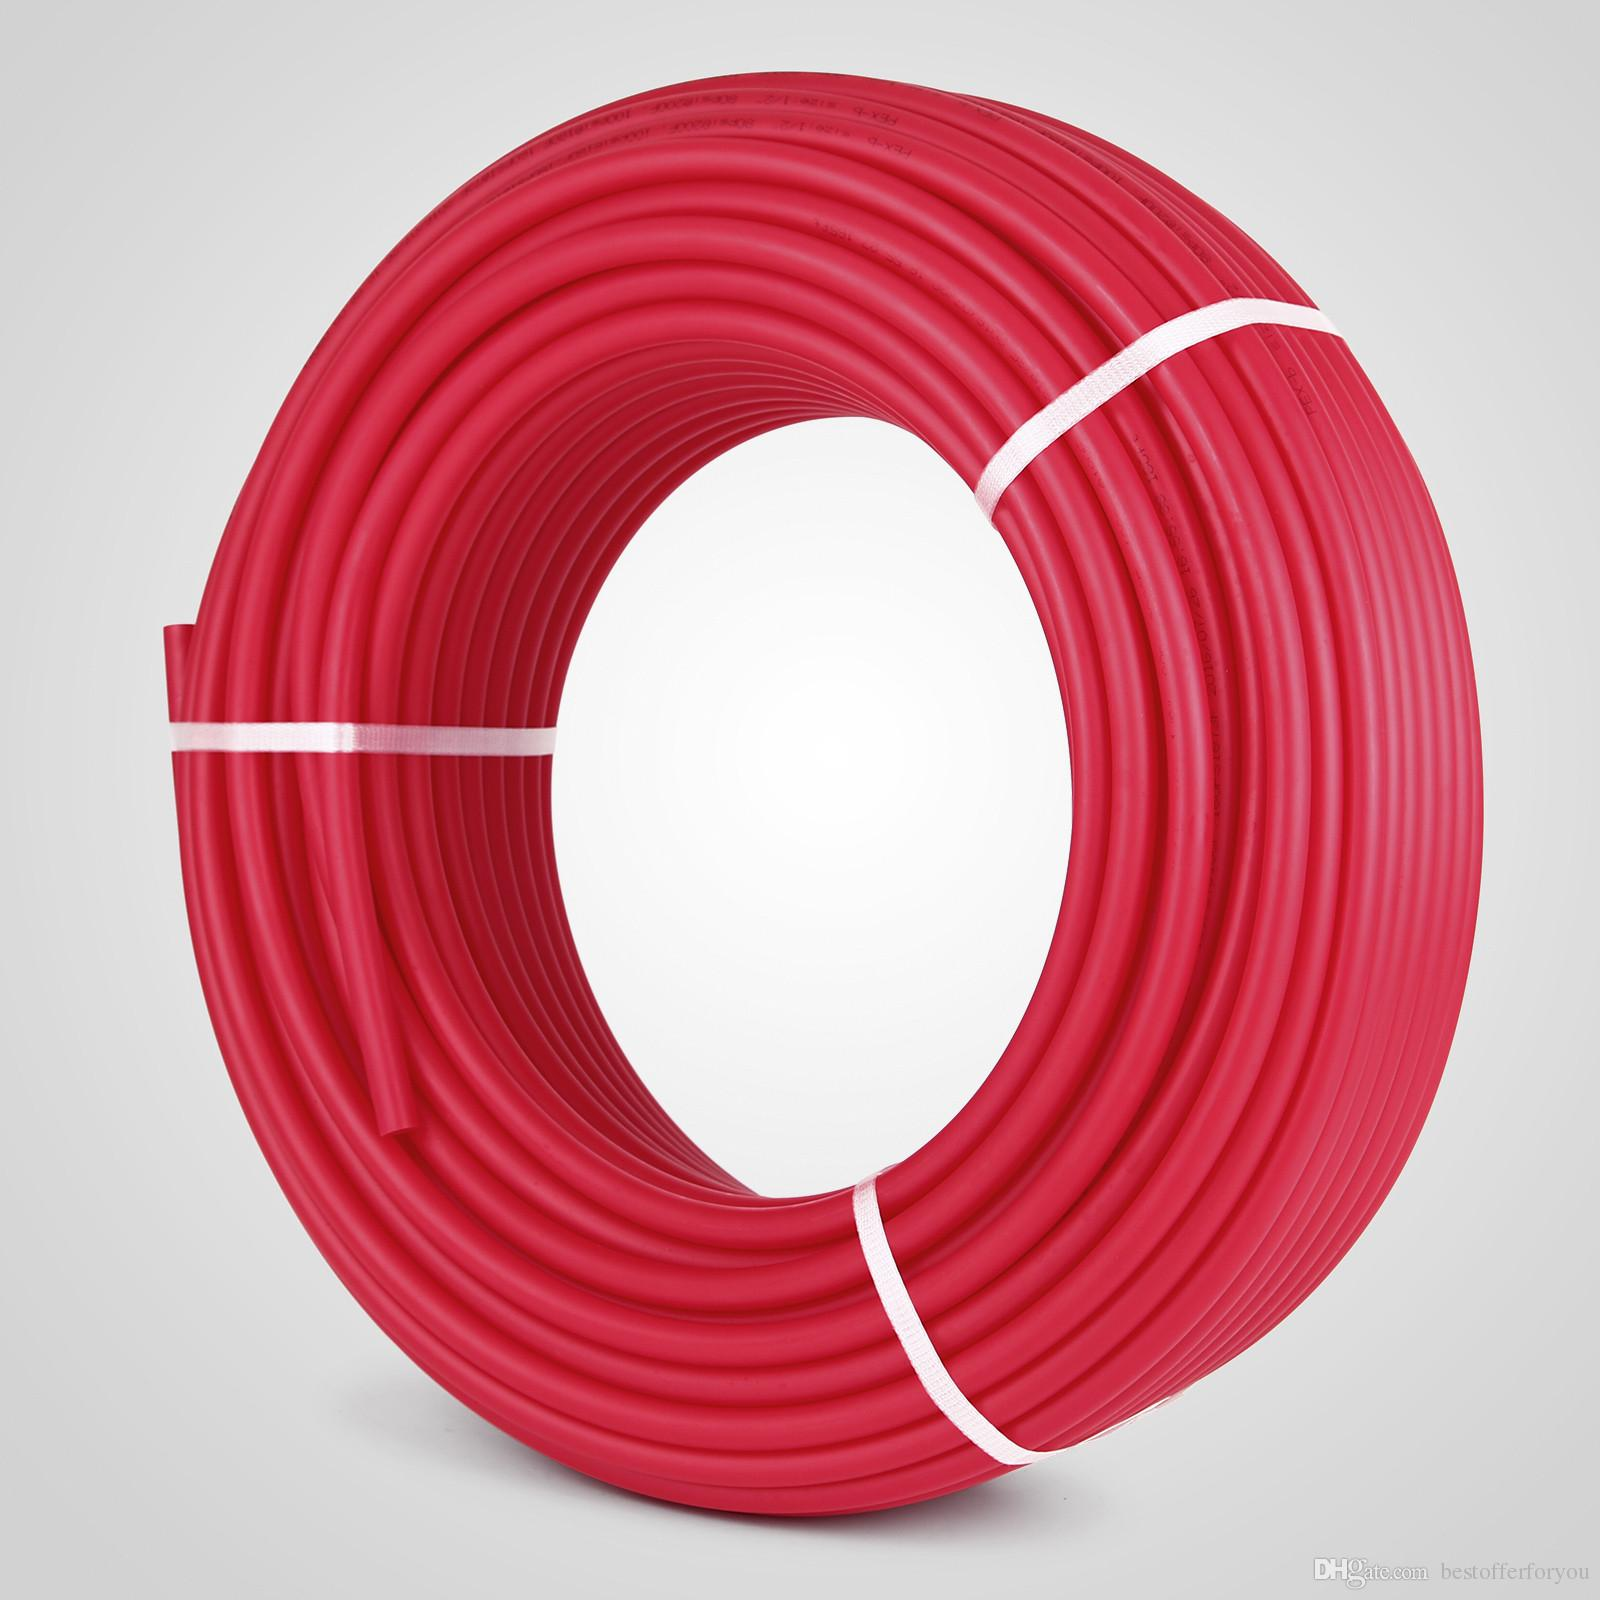 300ft Pex Tubing Pipe Non-Barrier Pex Tubing Pex Pipe Red Radiant Floor  Heat For Water Plumbing 1 ROLL RADIANT PIPING Applications